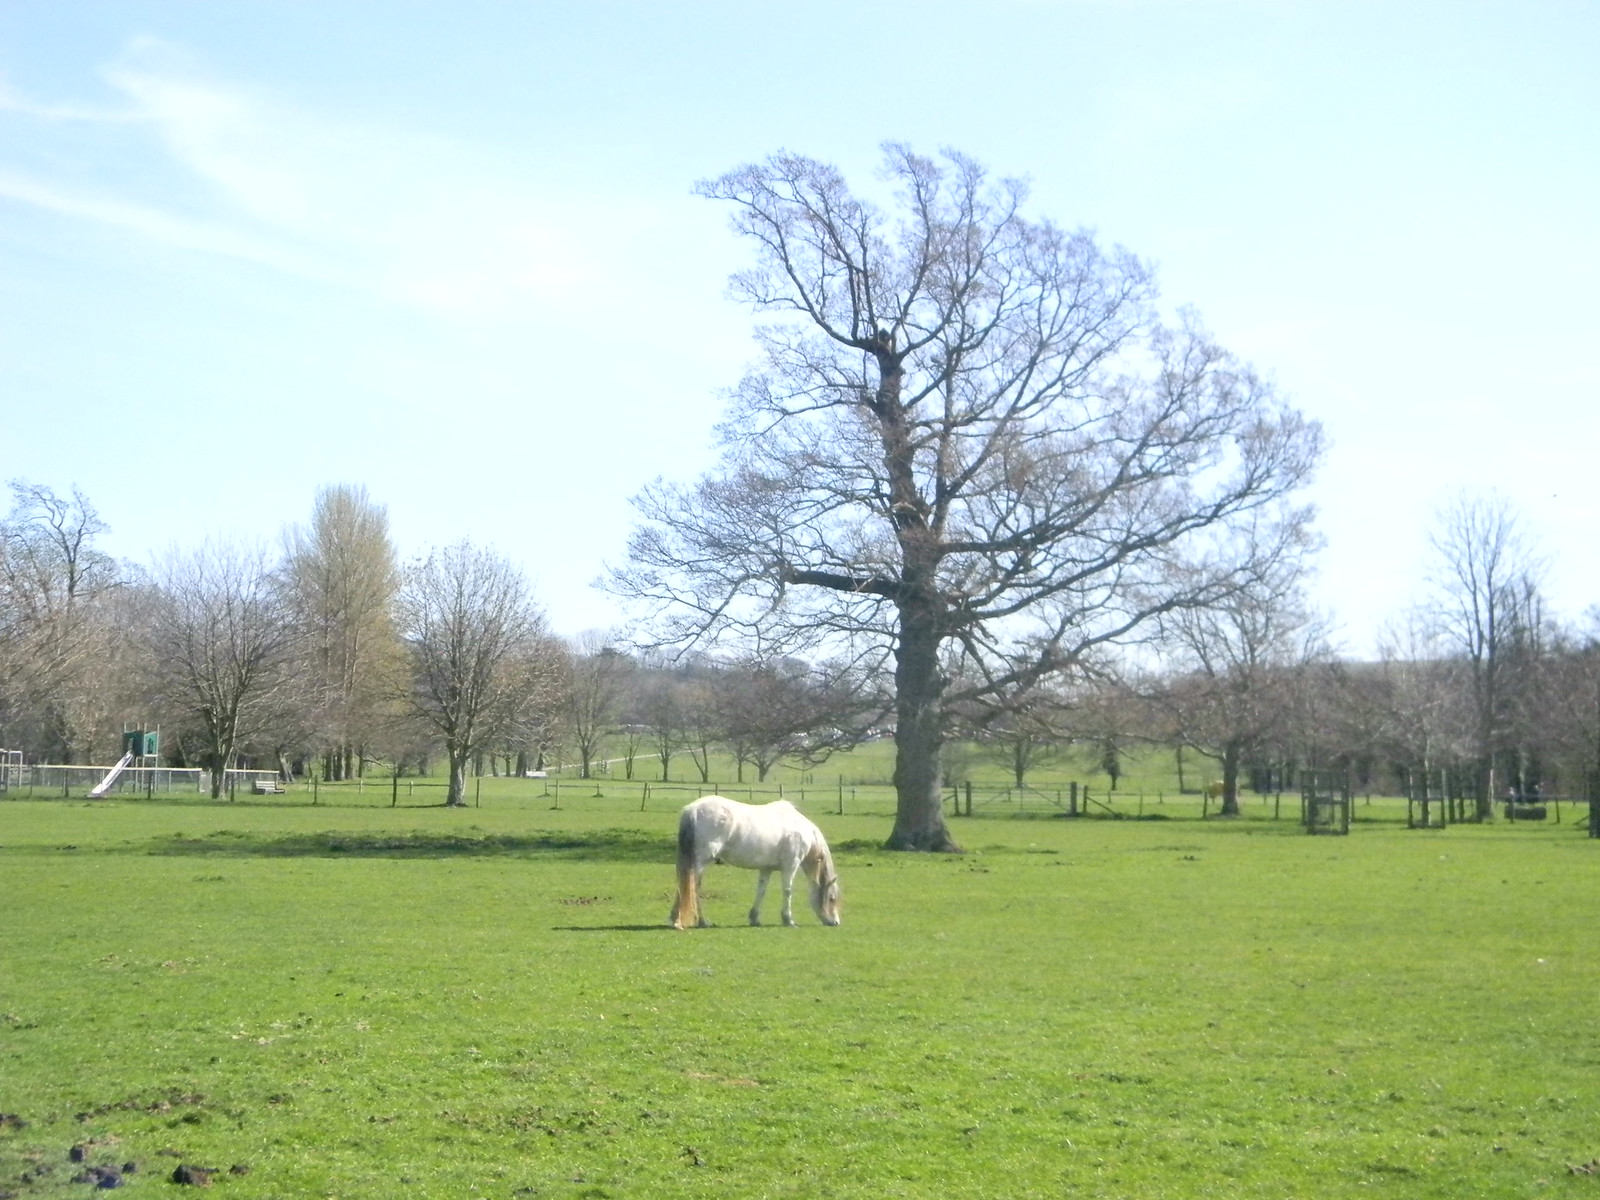 Horse with tree Firle Park. Lewes Circular via West Firle